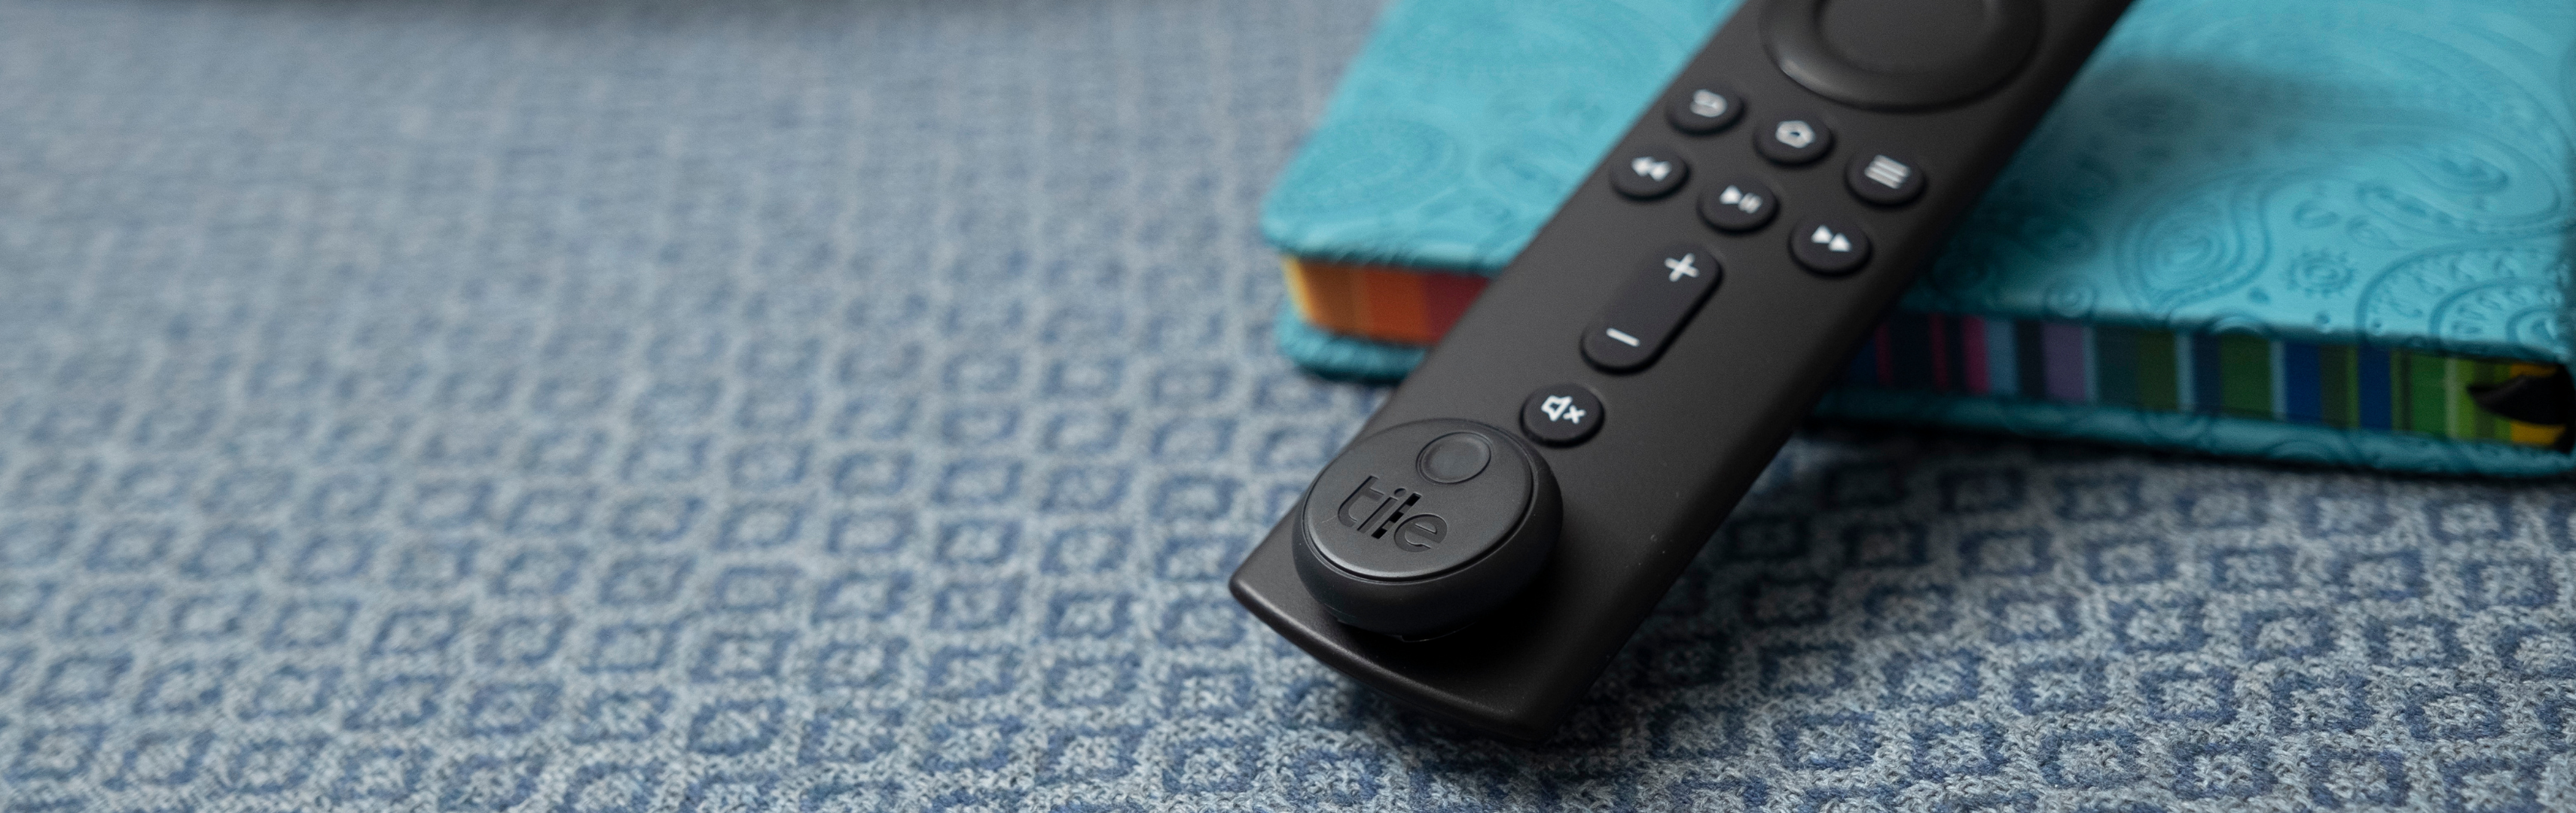 Find your remote with our remote locator works with amazon firestick and apple tv